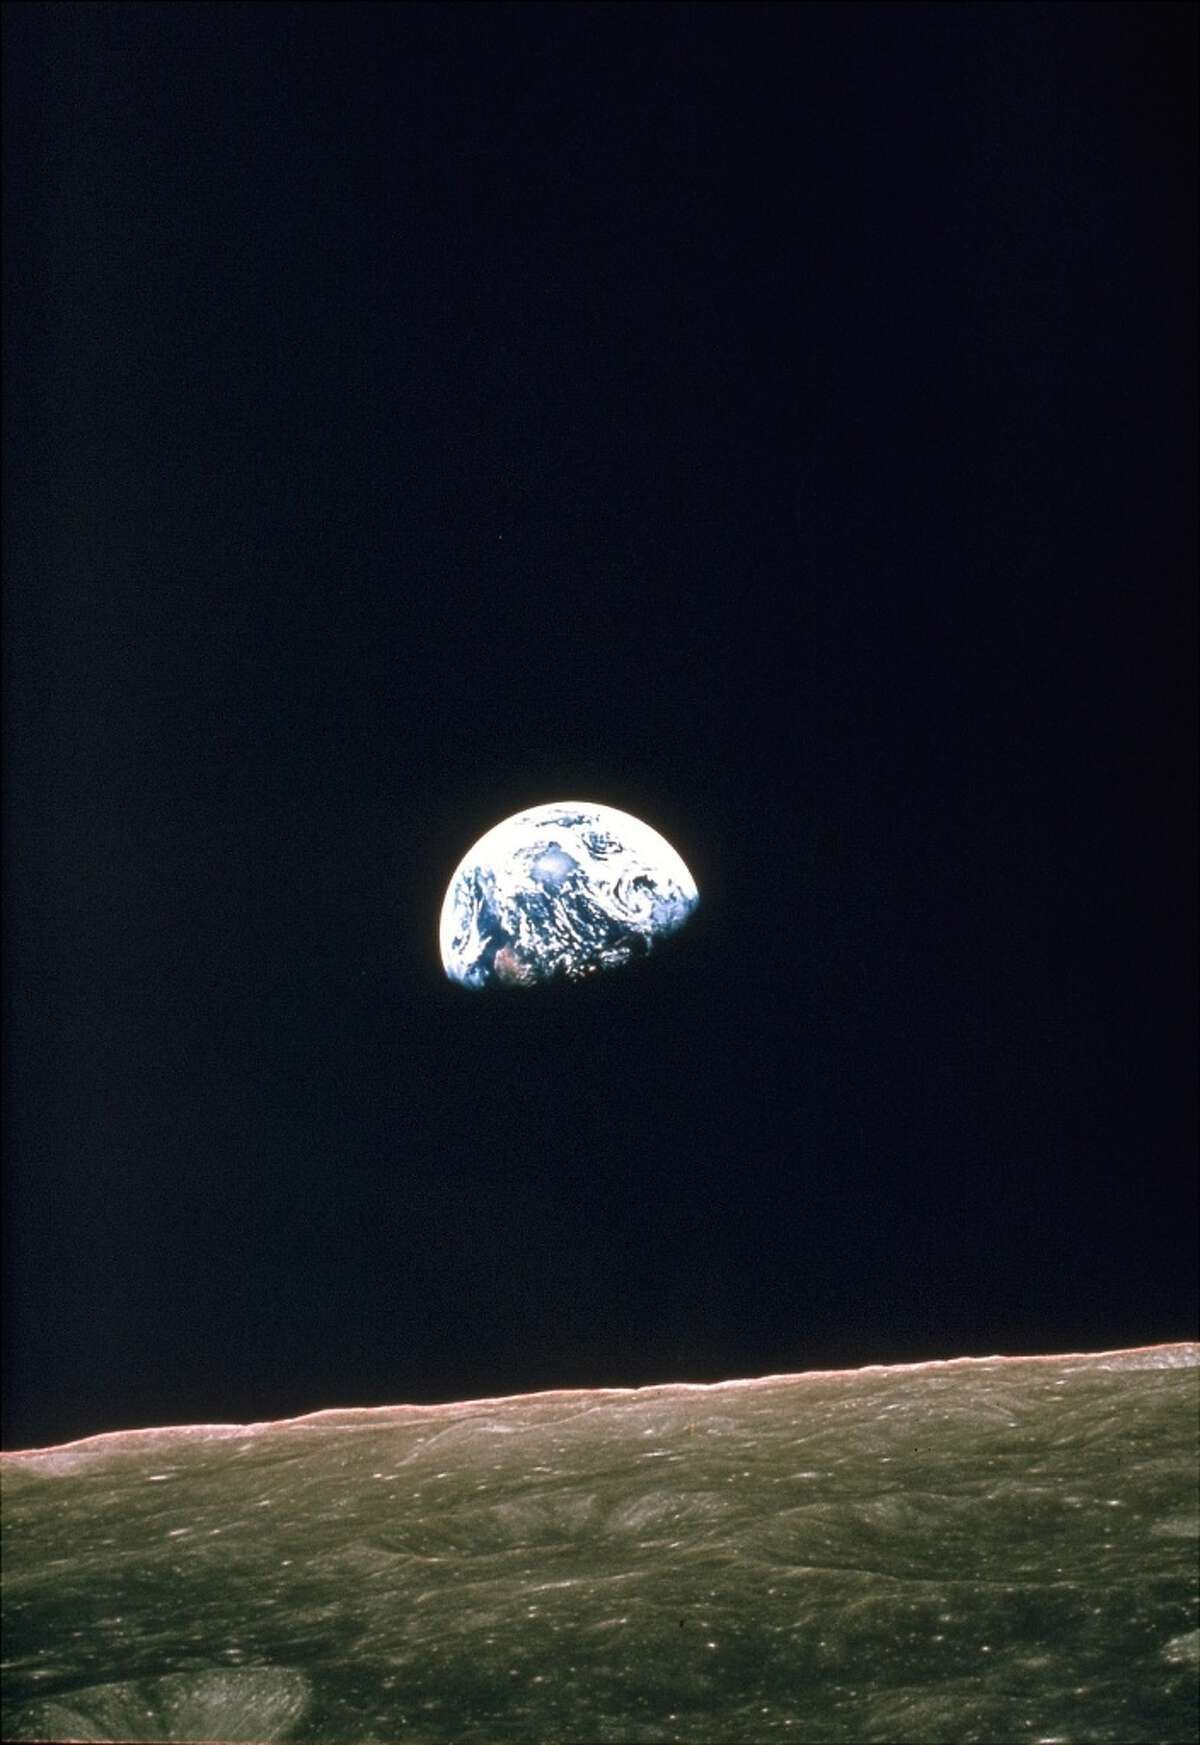 This photo, released by NASA on Dec. 29, 1968, shows the view of the rising Earth that greeted Apollo 8 astronauts as they came from behind the moon after the lunar orbit insertion burn. The Earth is about five degrees above the horizon in this photo. The unnamed surface features in the foreground are near the eastern limb of the moon as viewed from Earth. Dec. 21, 2008 sees the 40th anniversary of the launch of the Apollo 8 mission bringing Mission Commander Frank Borman, Command Module Pilot James Lovell and Lunar Module Pilot William Anders as the first humans ever to another celestial body. The mission during which the Apollo 8 crew became the first humans to see the far side of the Moon, paved the way for later missions including Apollo 11 to land the first man on the Moon in 1969. (AP photo/Nasa, File) (ASSOCIATED PRESS)